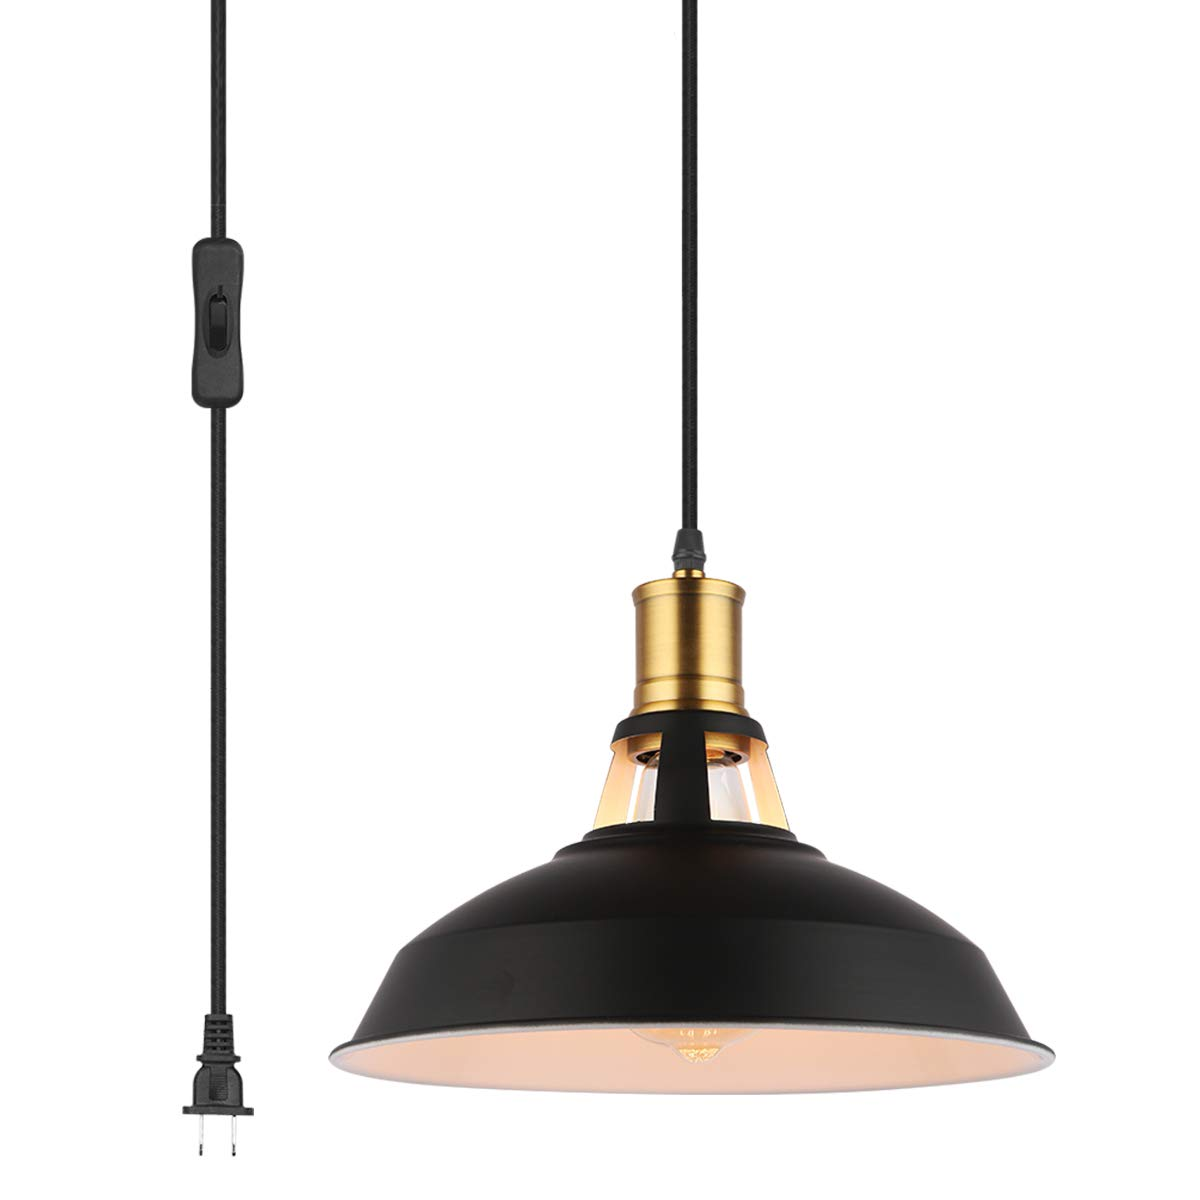 """Pendant Light with Plug in 15Ft Braided Cord and Switch Rustic Hanging Lamp with Metal Shade Vintage Swag Lighting for Kitchen Island Dining Room Bar Counter(BLACK-10.63"""")"""